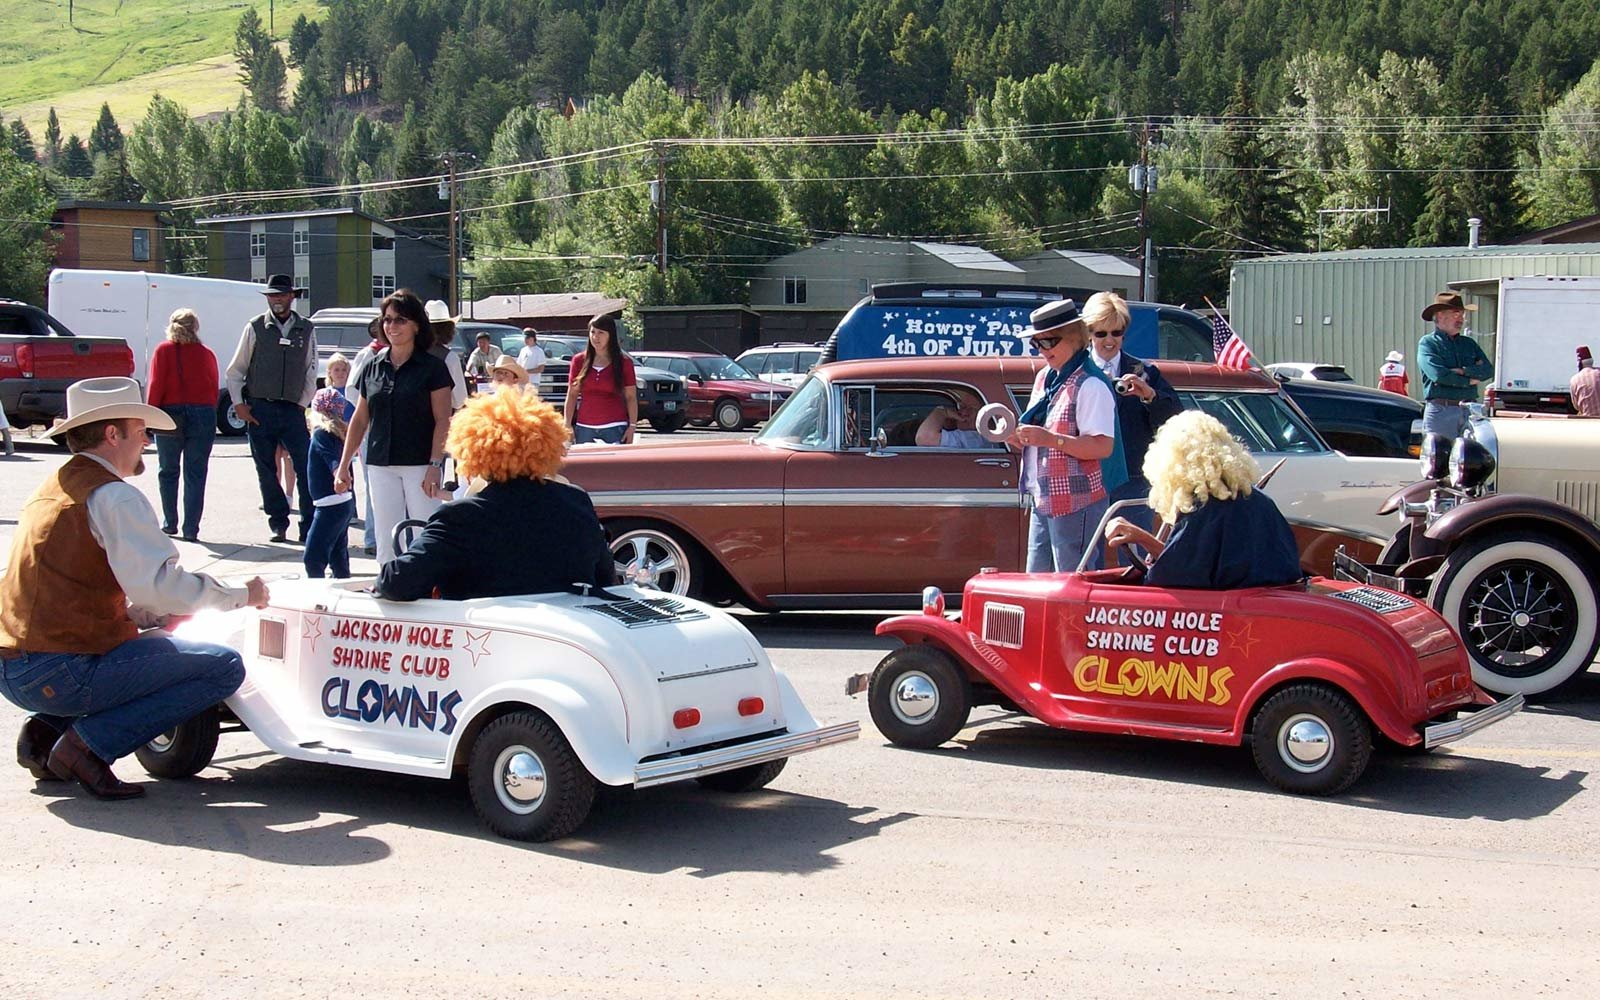 Fourth of July Parade, Jackson Hole, Wyoming